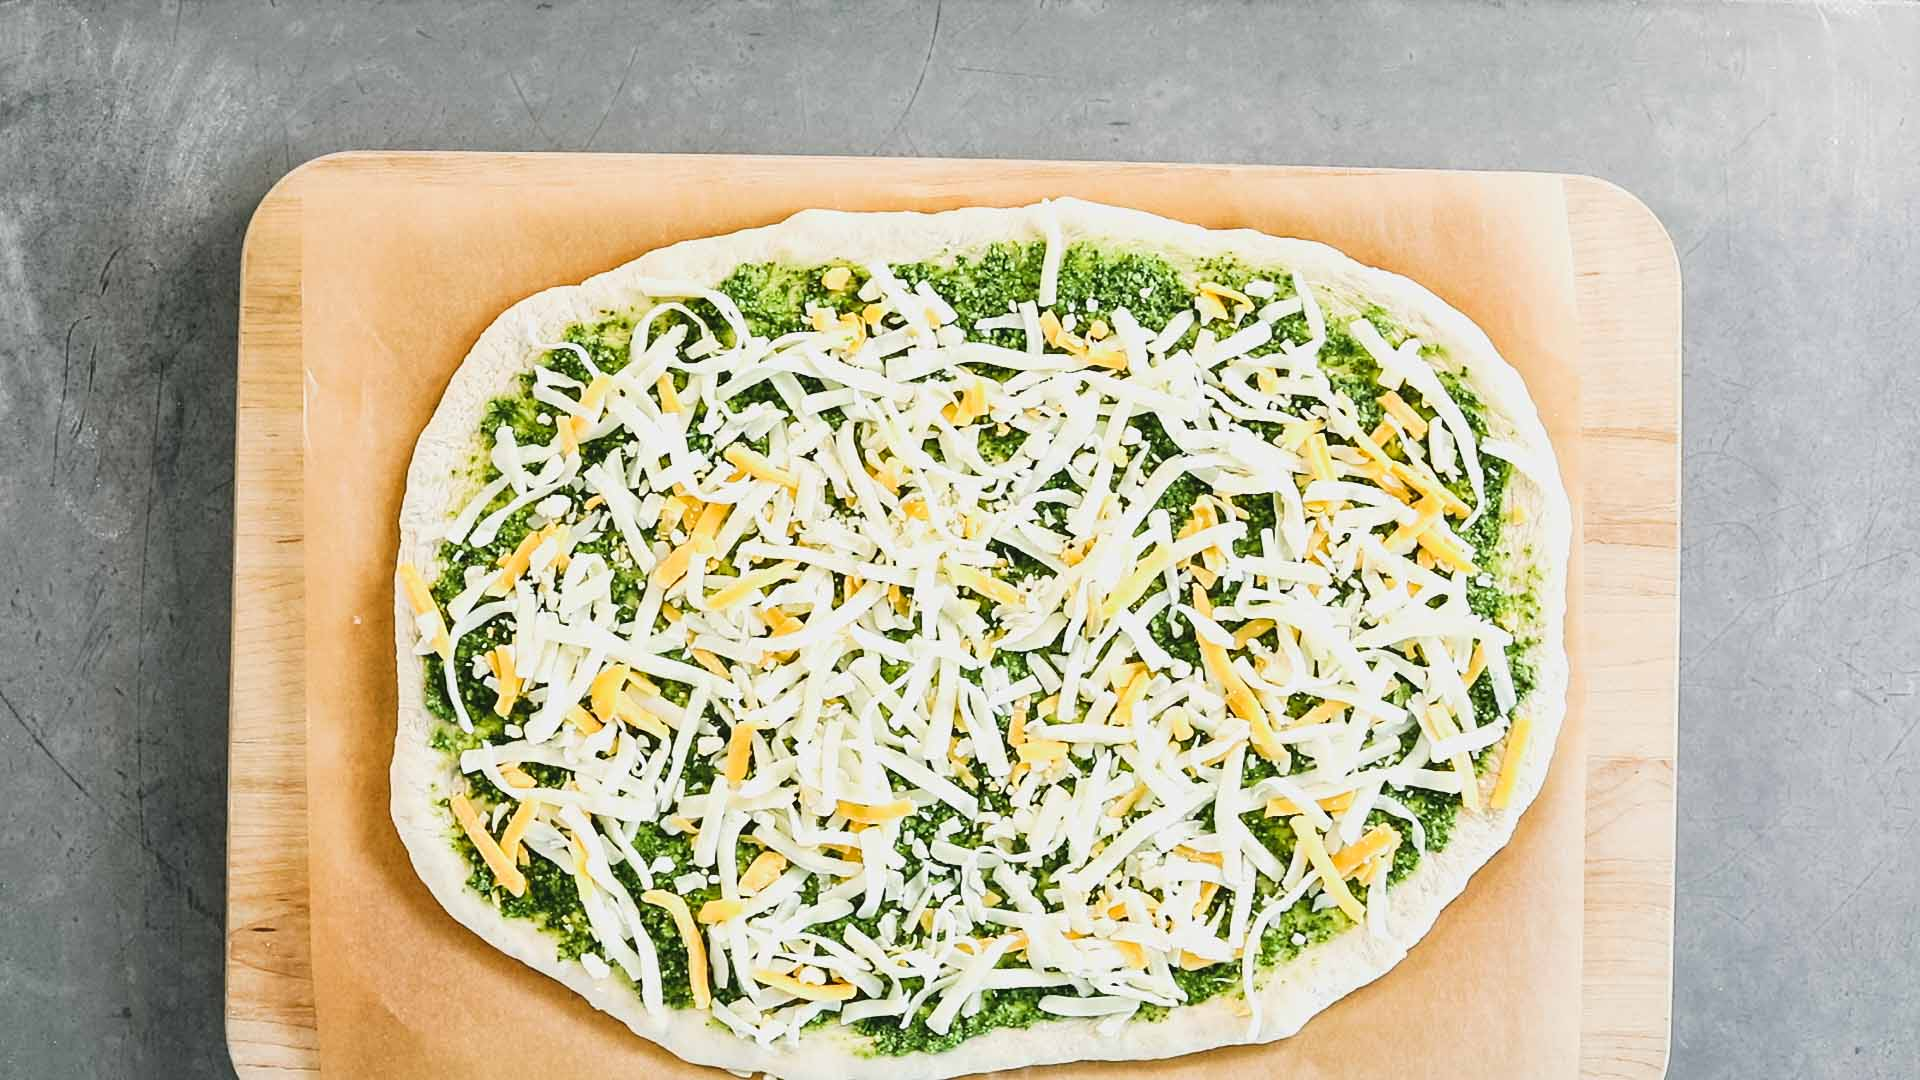 the pizza with cheese and pesto from overhead